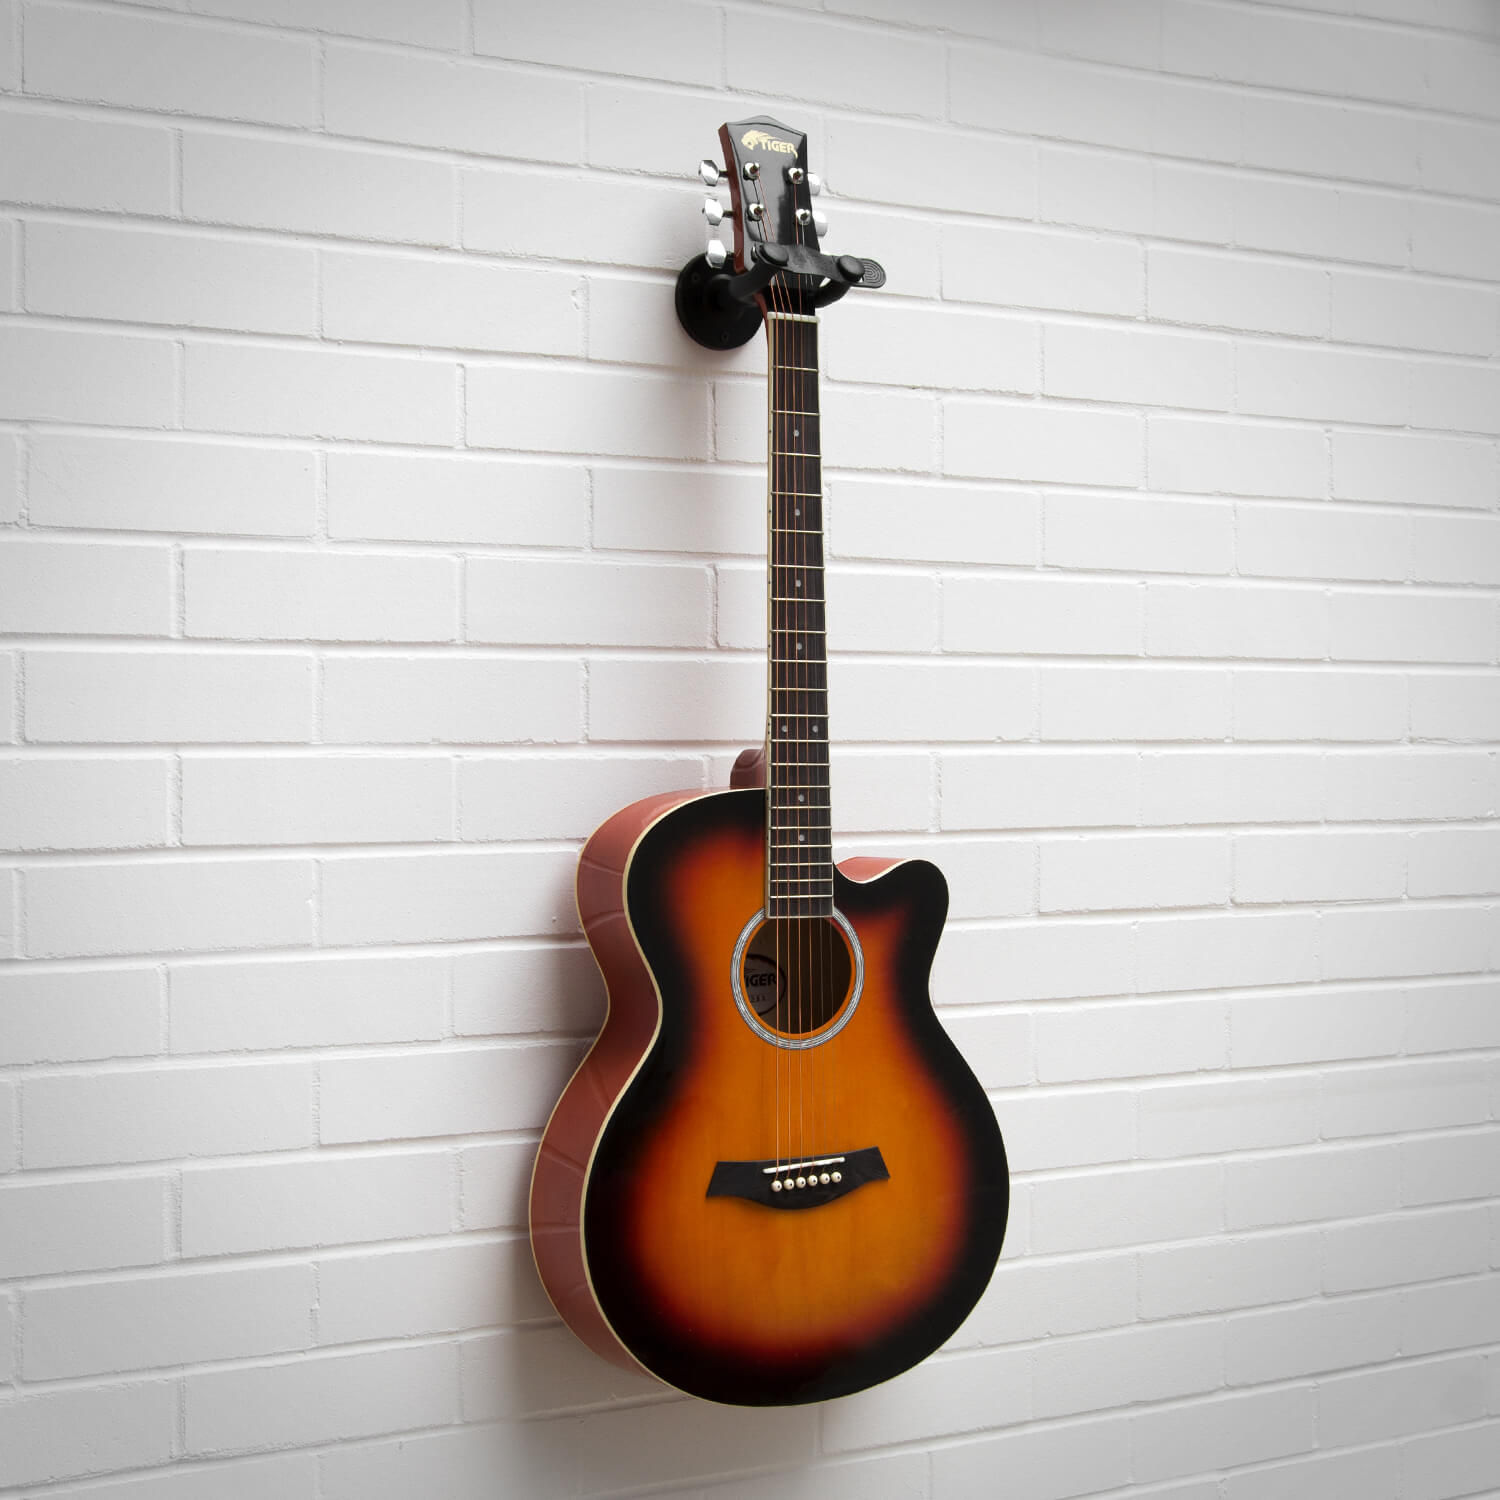 Tiger Guitar Wall Hanger - 3 Pack - Electric/Acoustic/Classical/Bass - 5